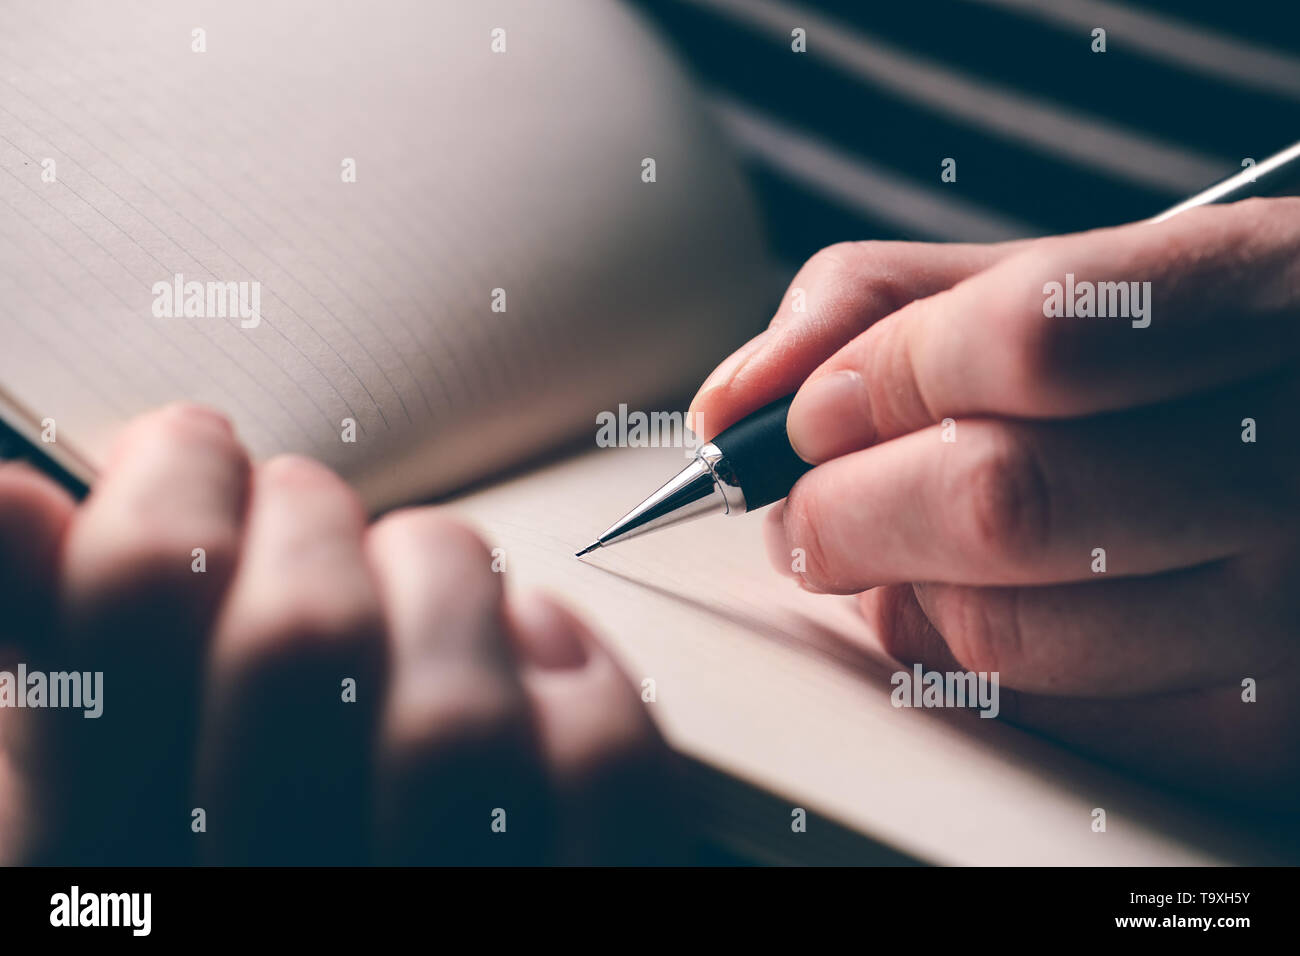 Left-handed woman writing diary, close up of hands with pencil and notebook - Stock Image